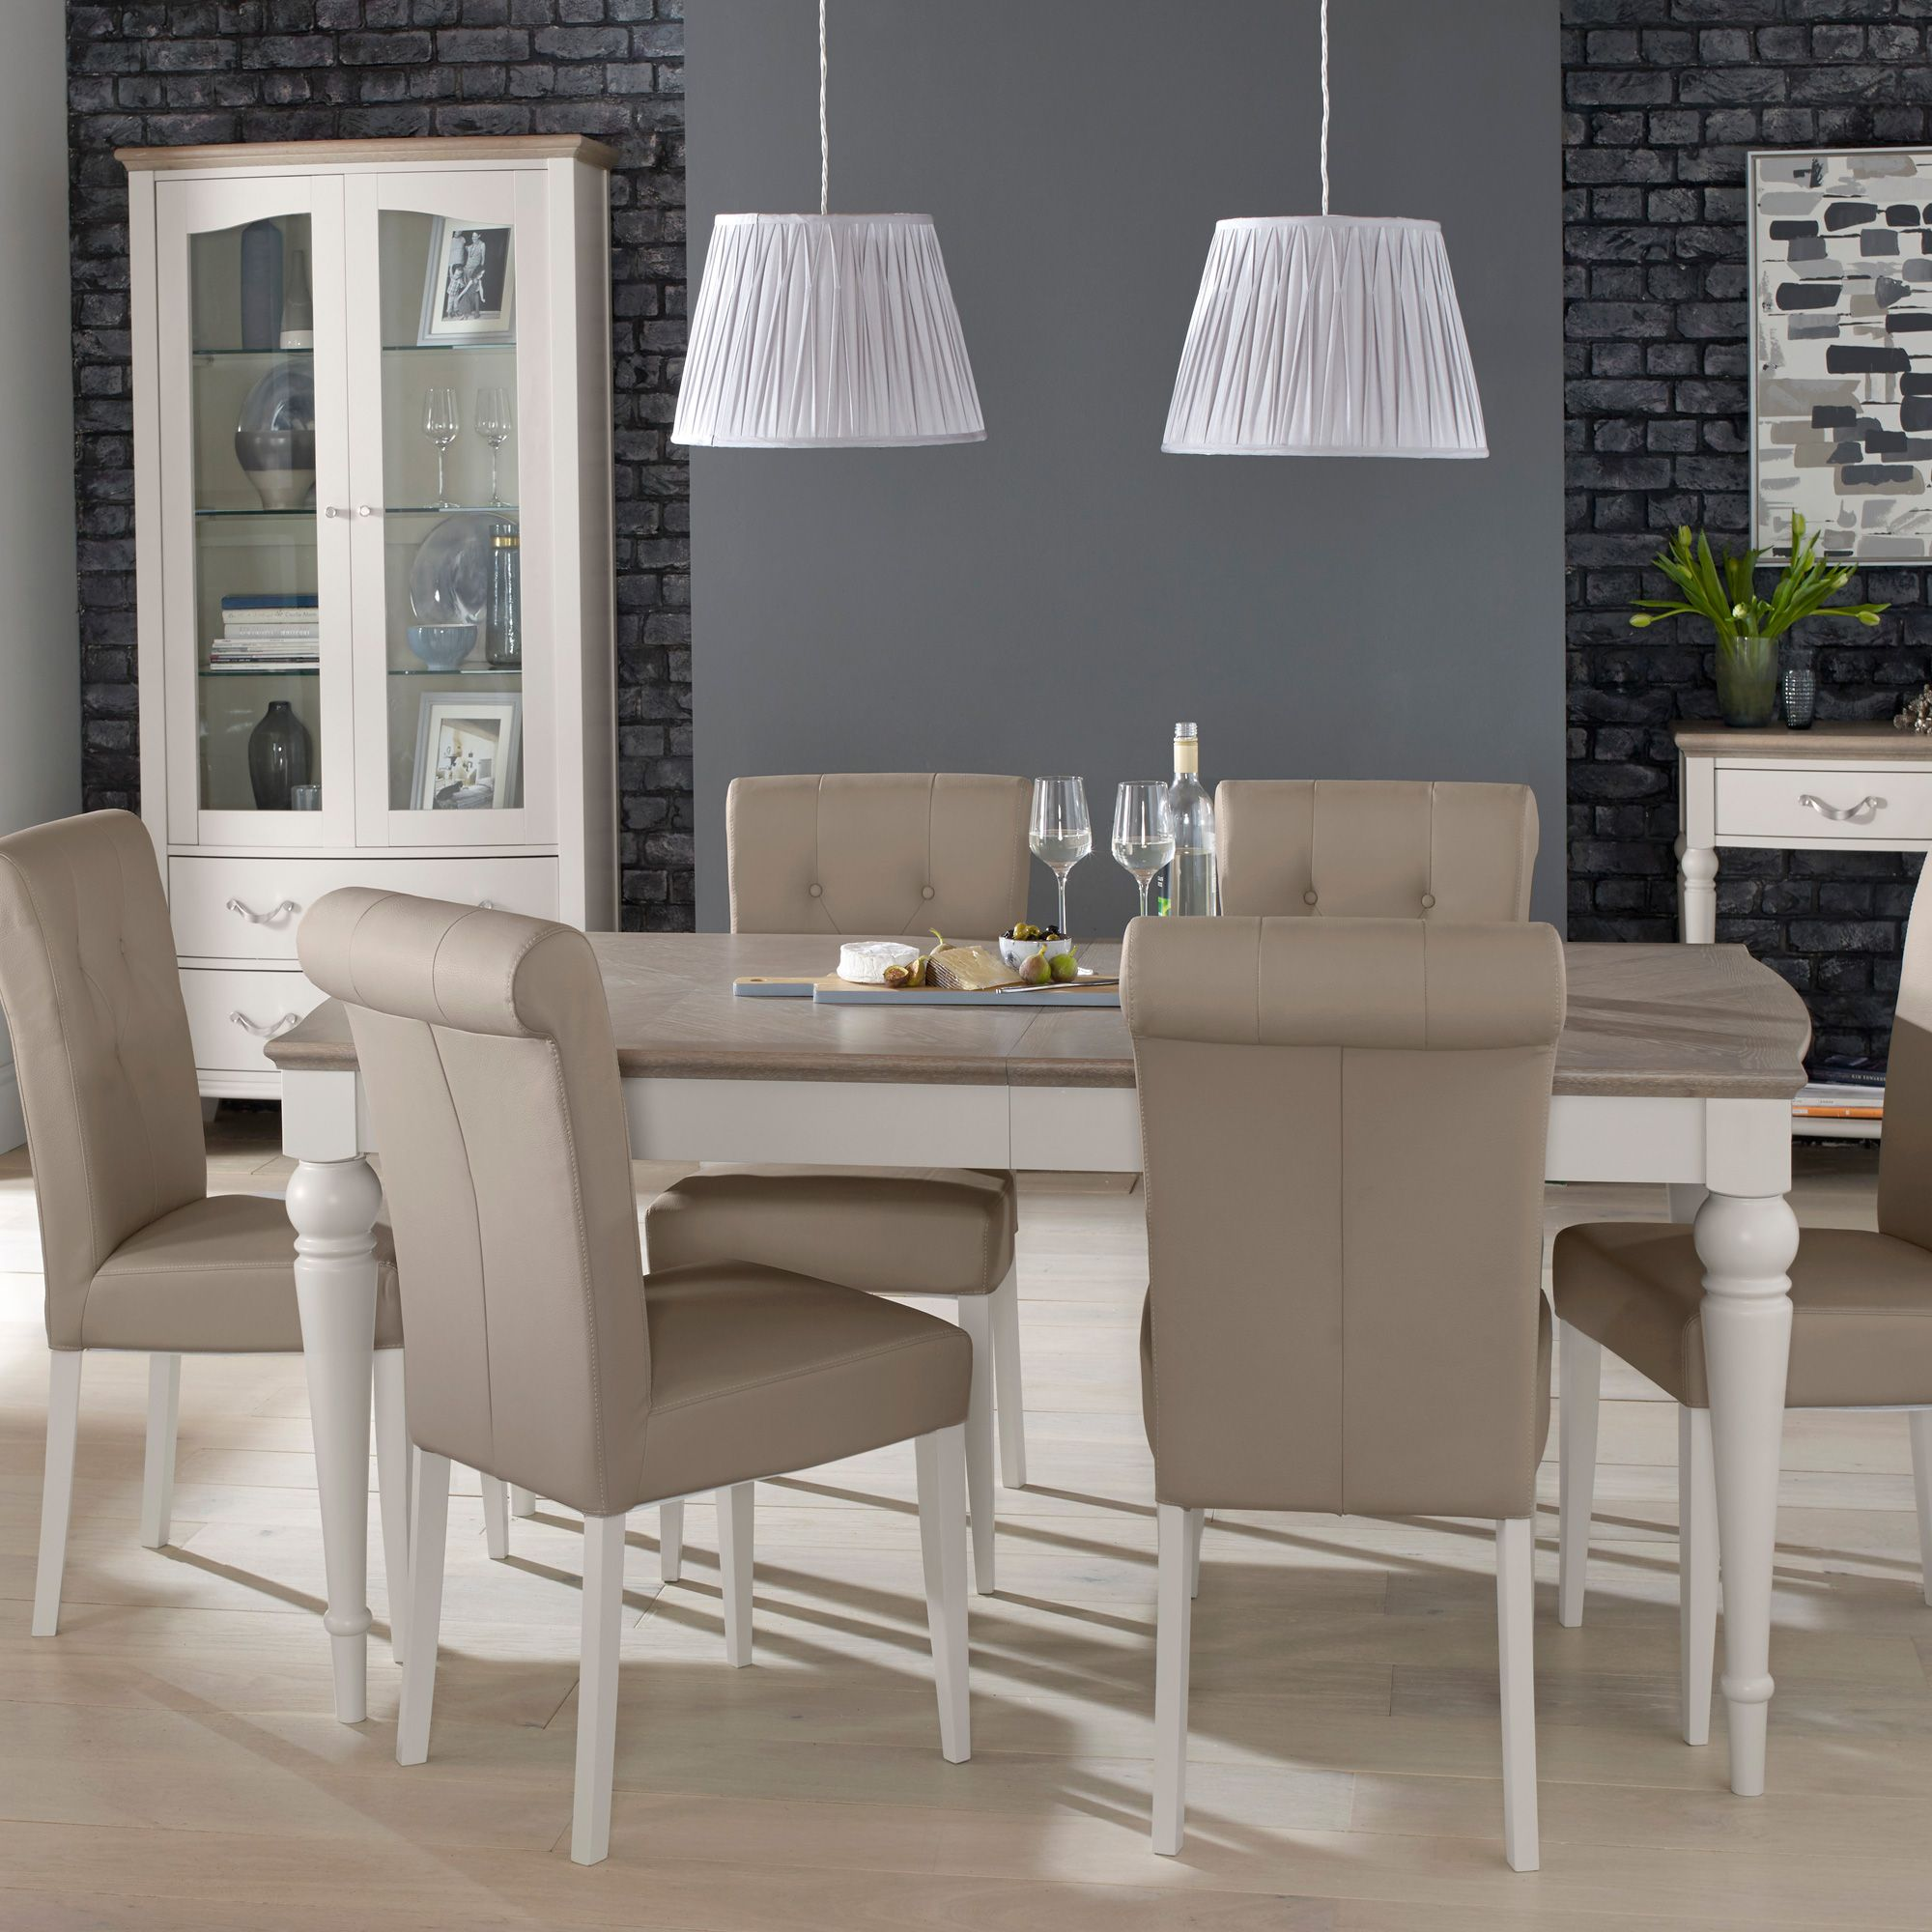 Freeport 6 8 Person Grey Washed Oak Extending Dining Table 6 Grey